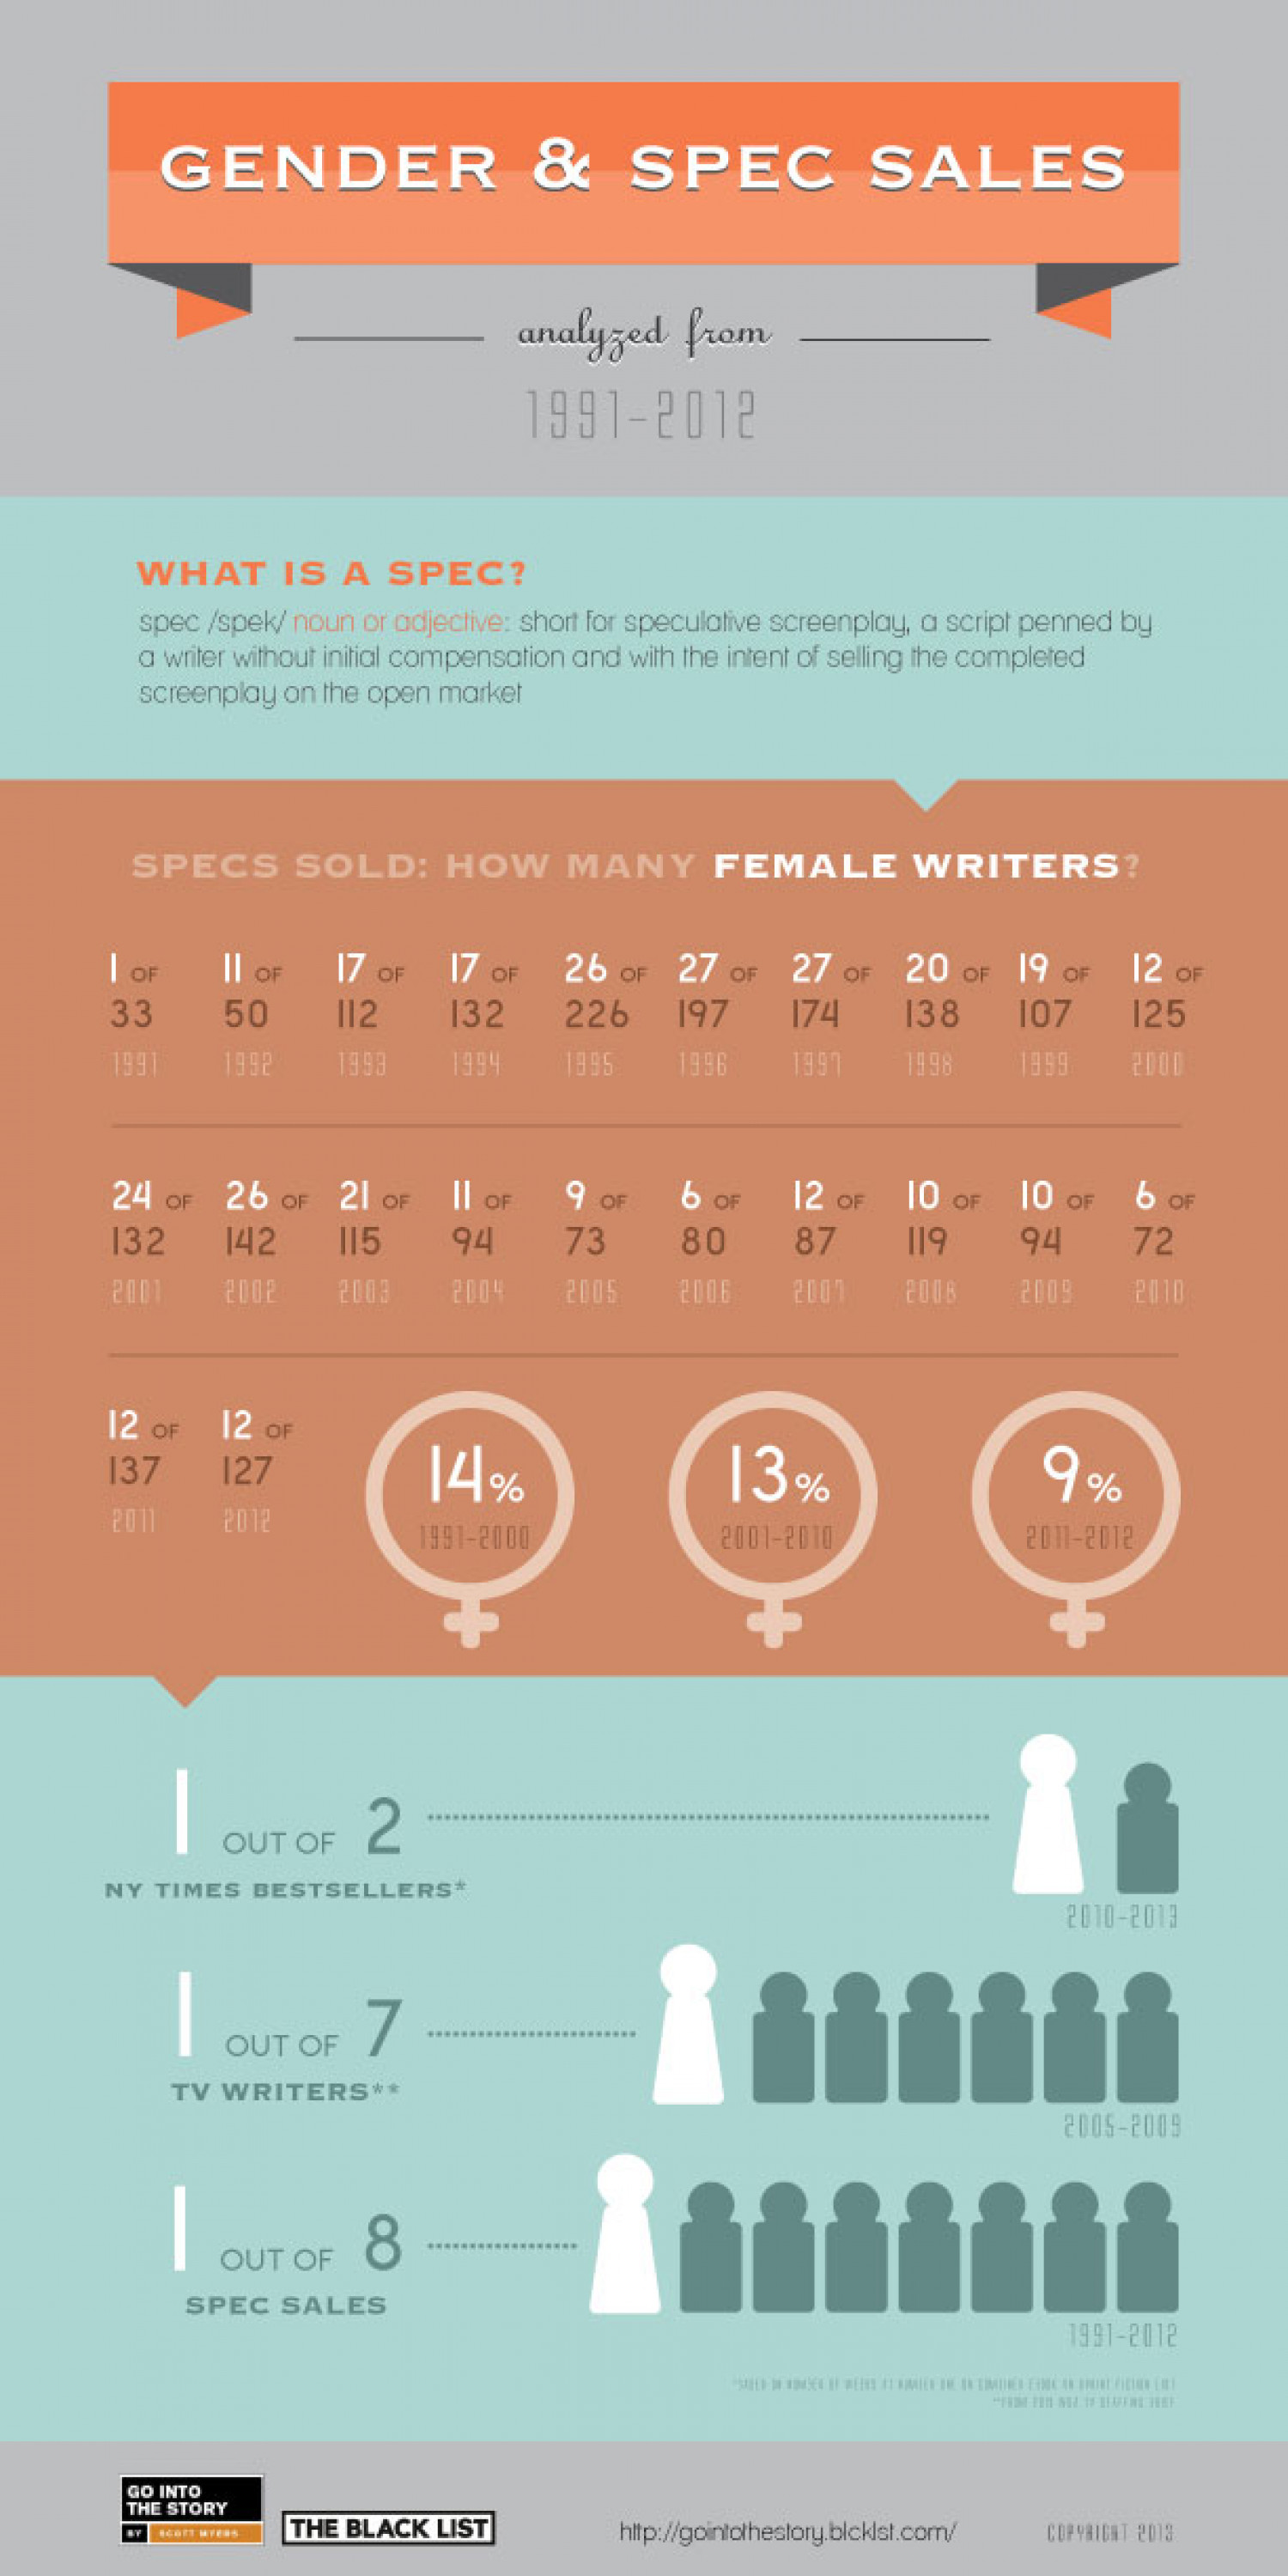 Gender & Spec Sales Infographic